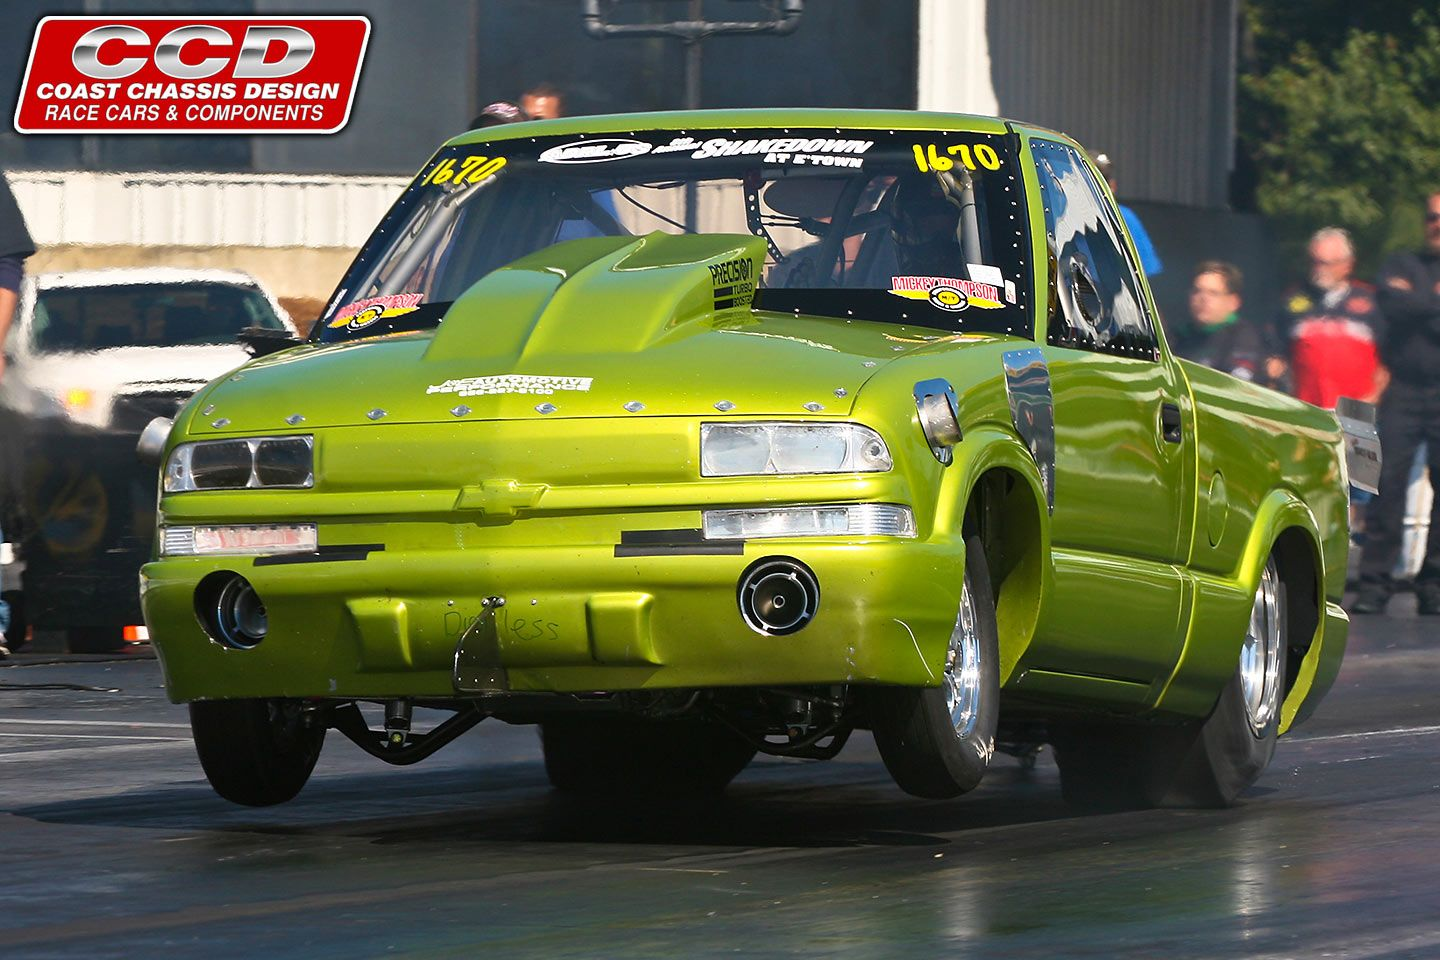 Charming Turbo Drag Cars For Sale Contemporary - Classic Cars Ideas ...